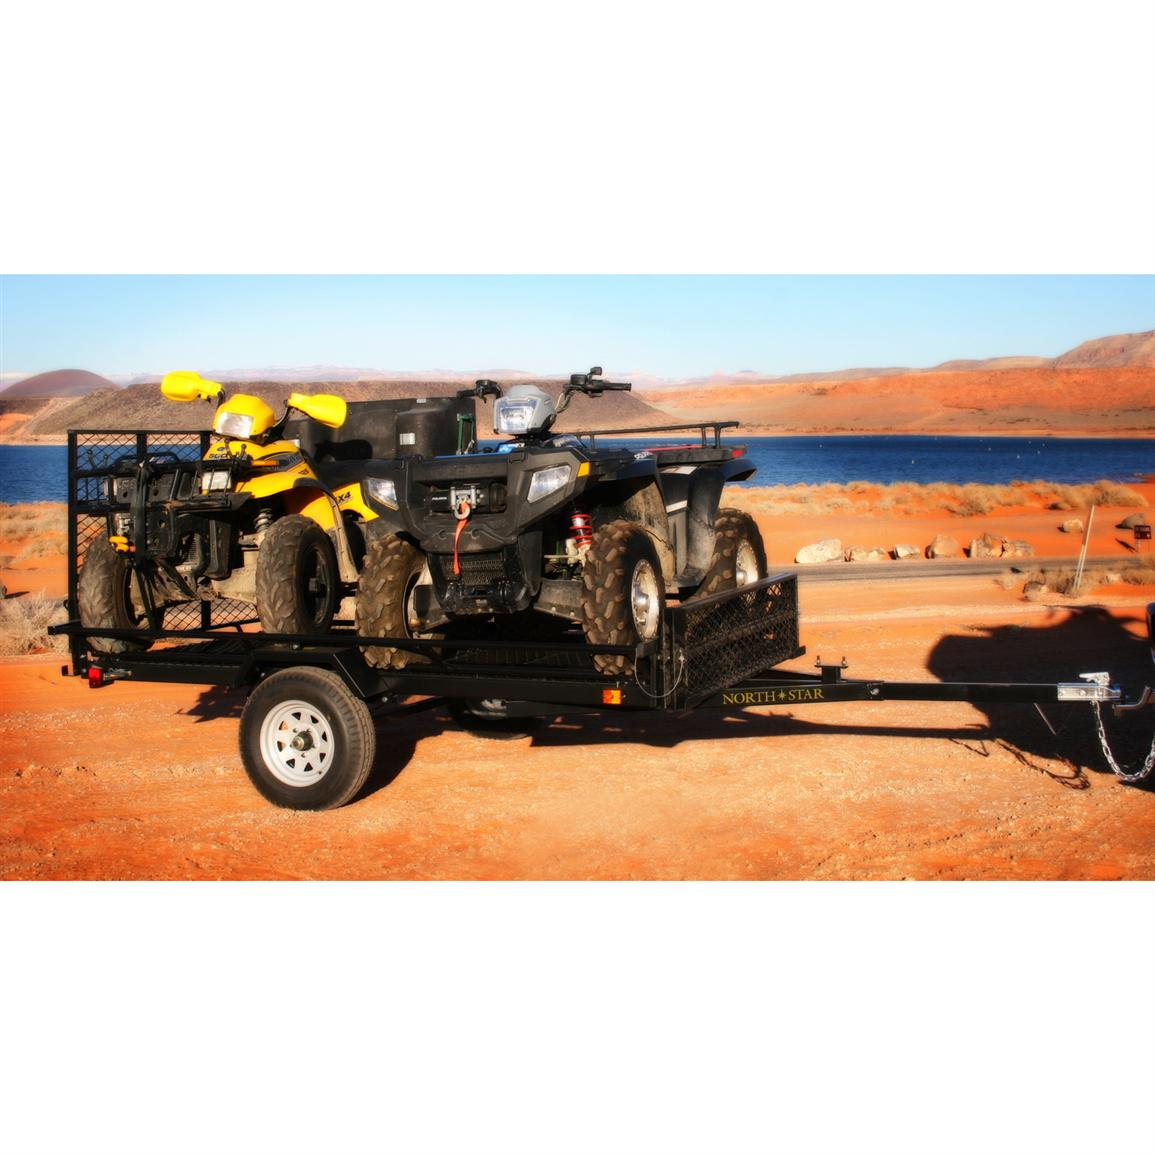 Northstar® Sportstar II WG ATV Trailer Kit